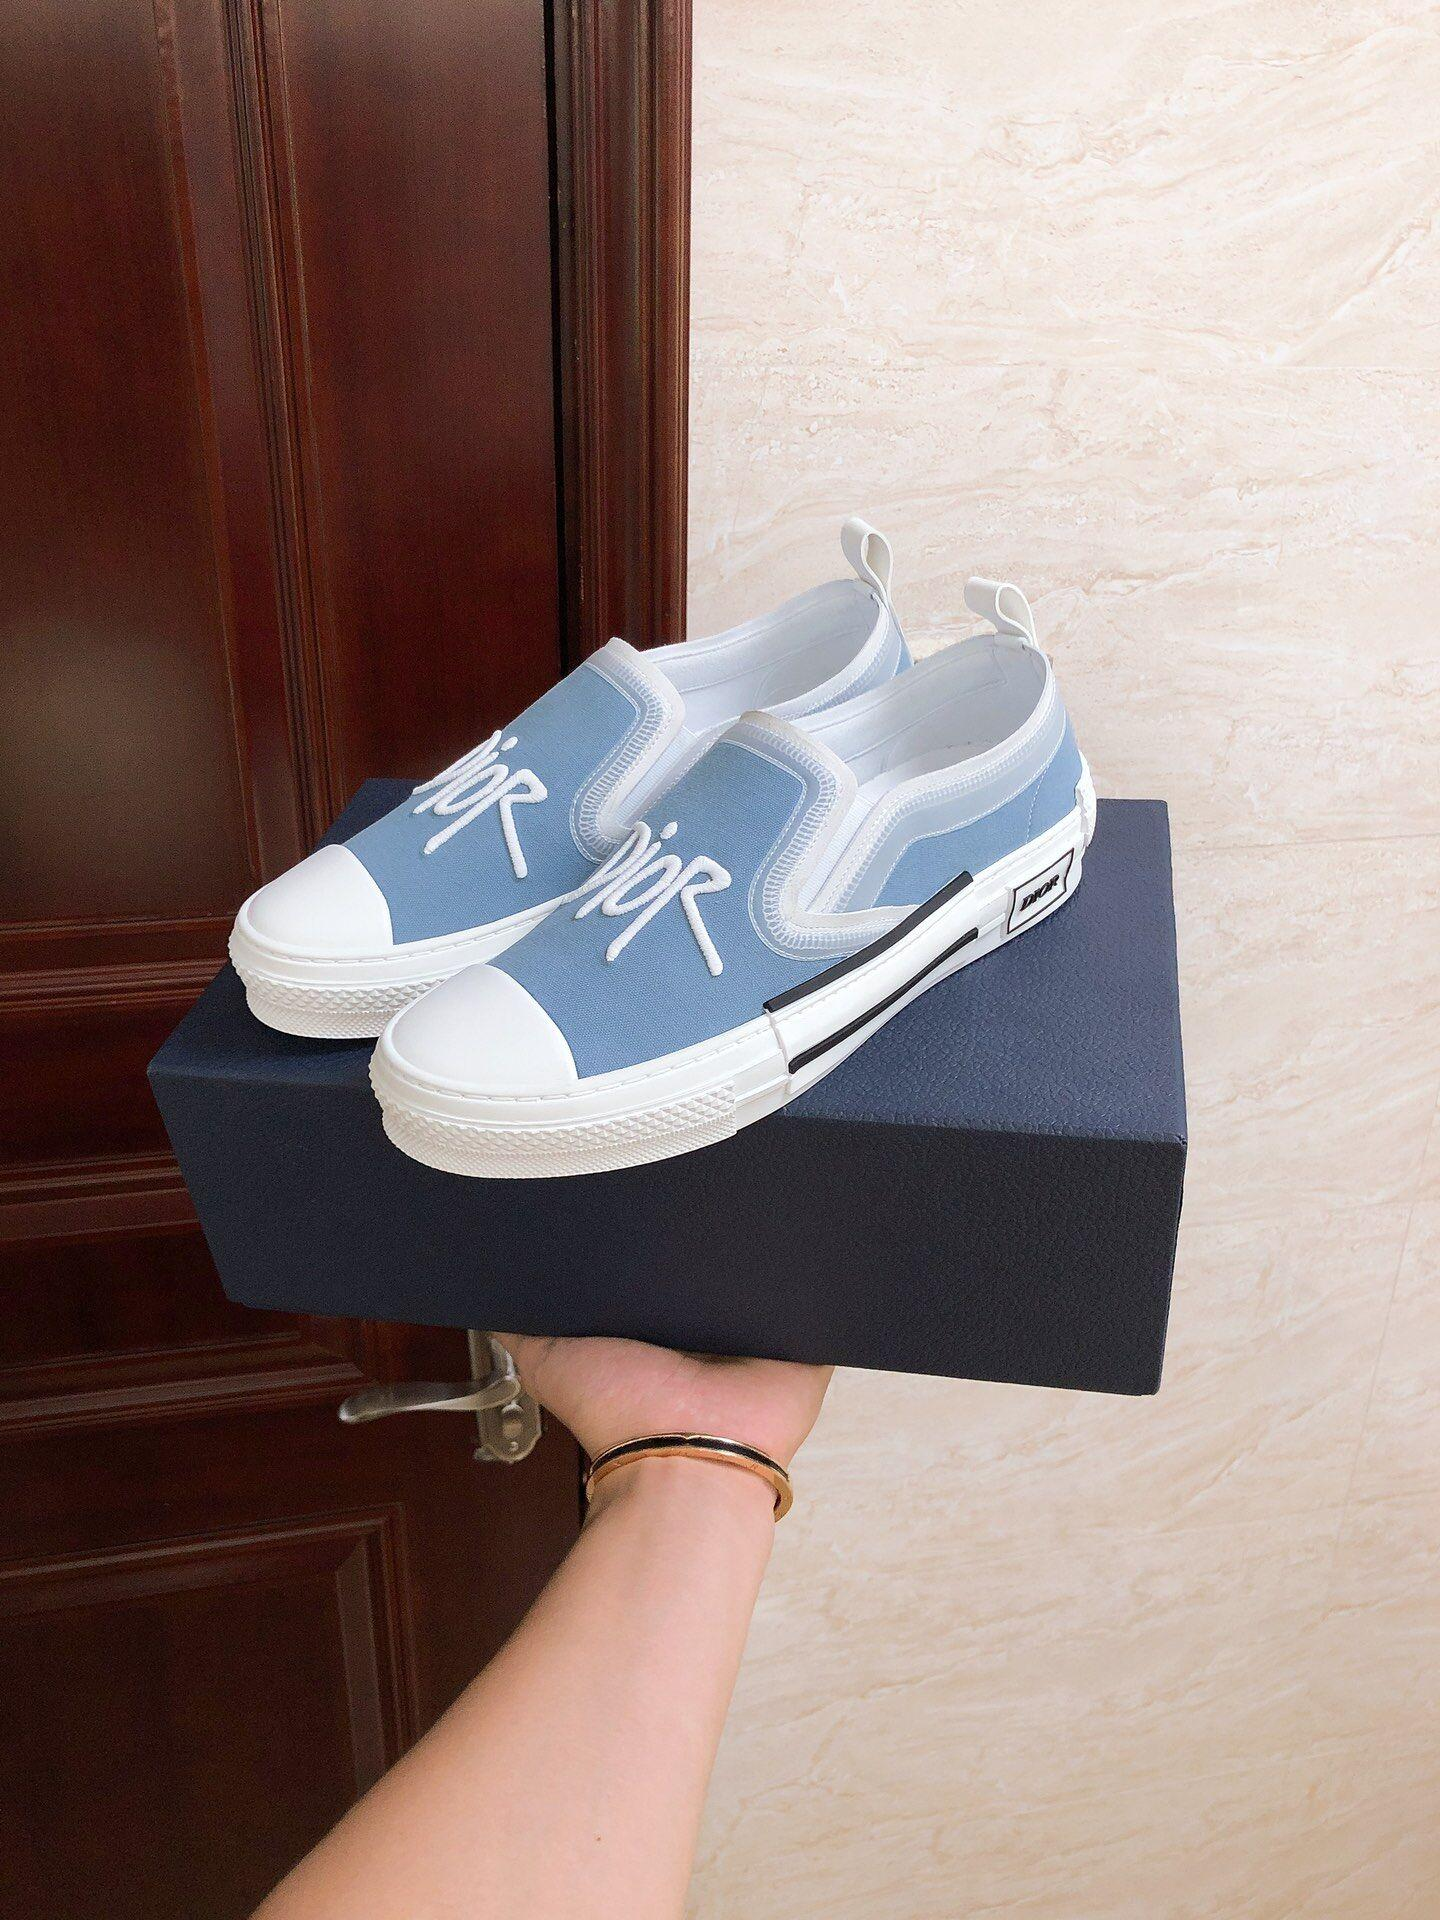 B23 SLIP-ON SNEAKER Blue Canvas with DIOR AND SHAWN Signature dior sneaker dior  9